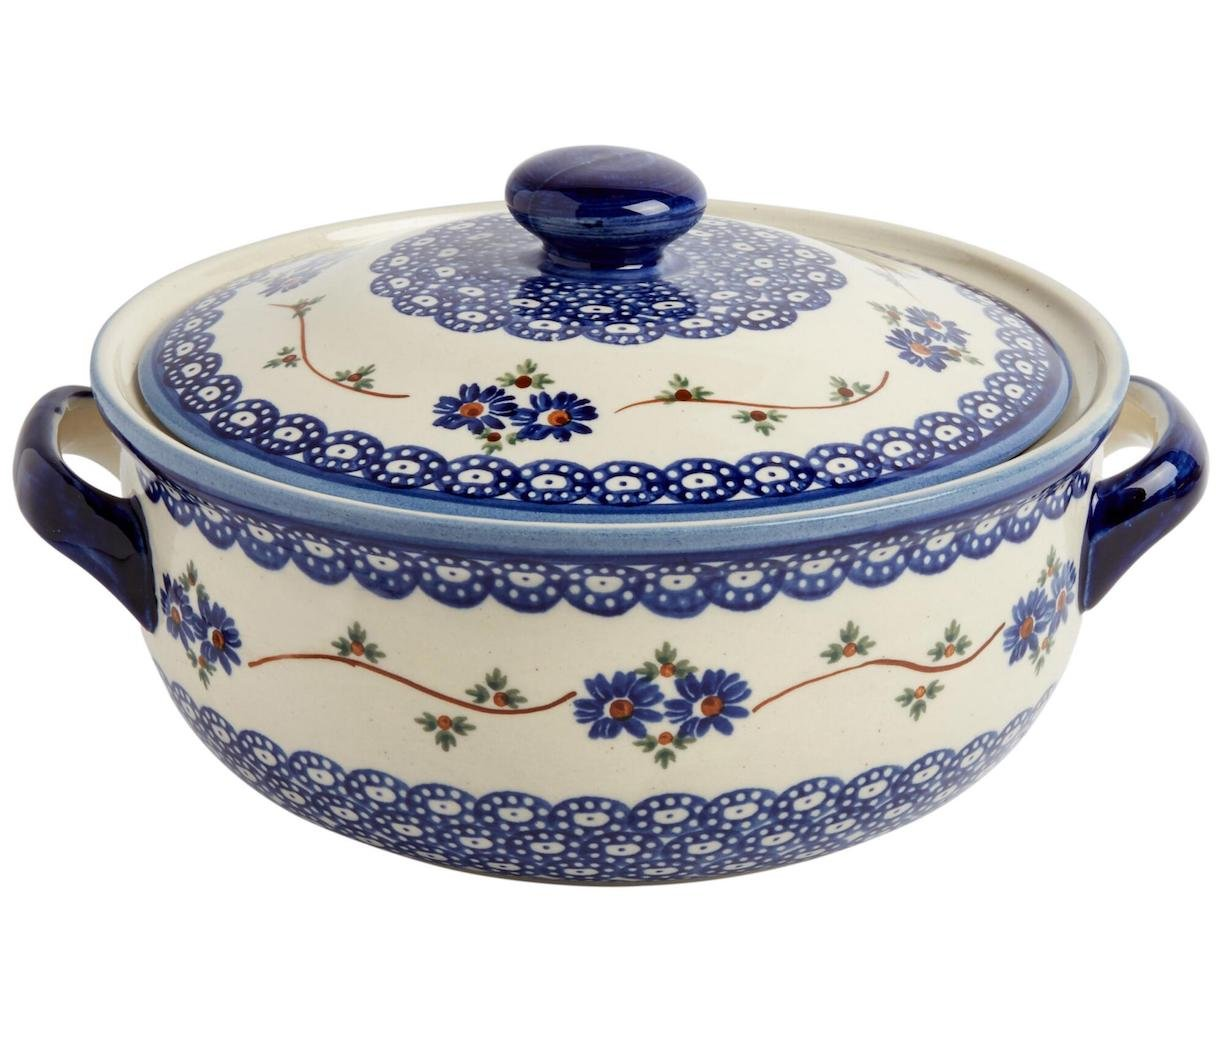 "Polish Pottery Blue Floral Chain Round Covered Serving Dish, 10""L x 8.5""W x 5.75""H w/ 60-oz Capacity Boleslawiec Polish Pottery"